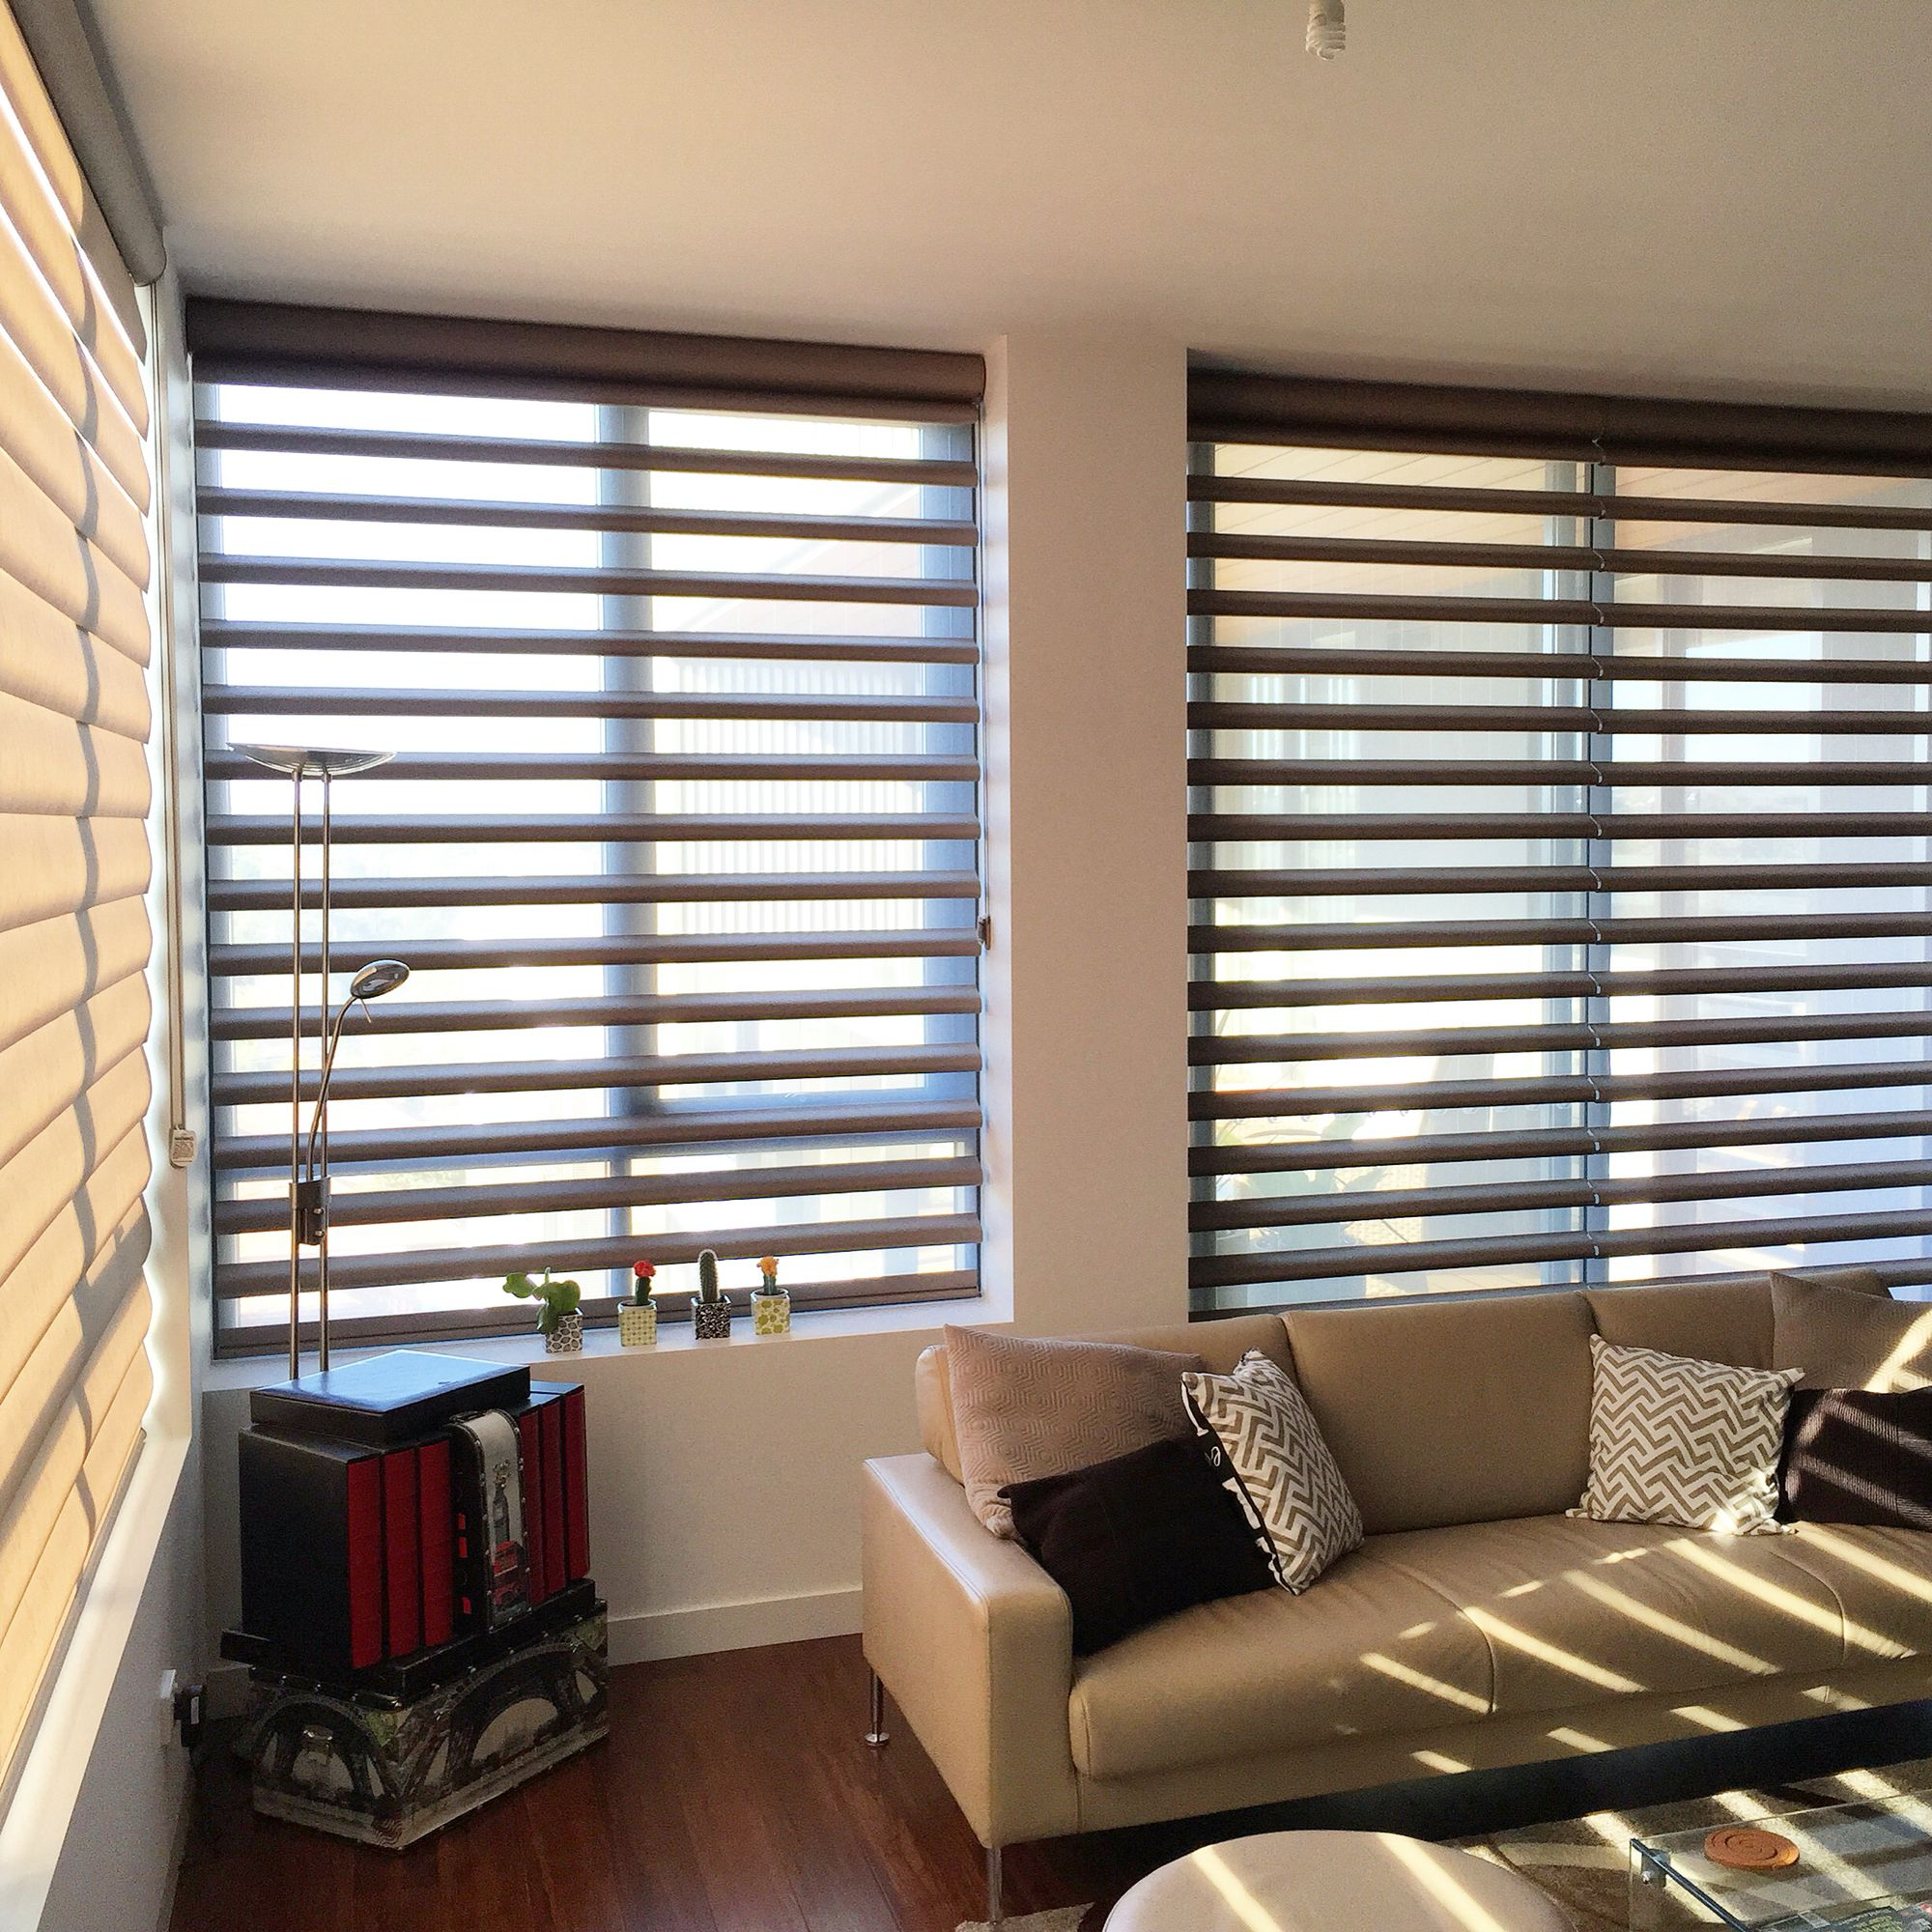 and of operated window designer banded fashions douglas fabric sheer blinds shades brown pirouette product bnd ruffell the dobby when st detail hunter bands solid